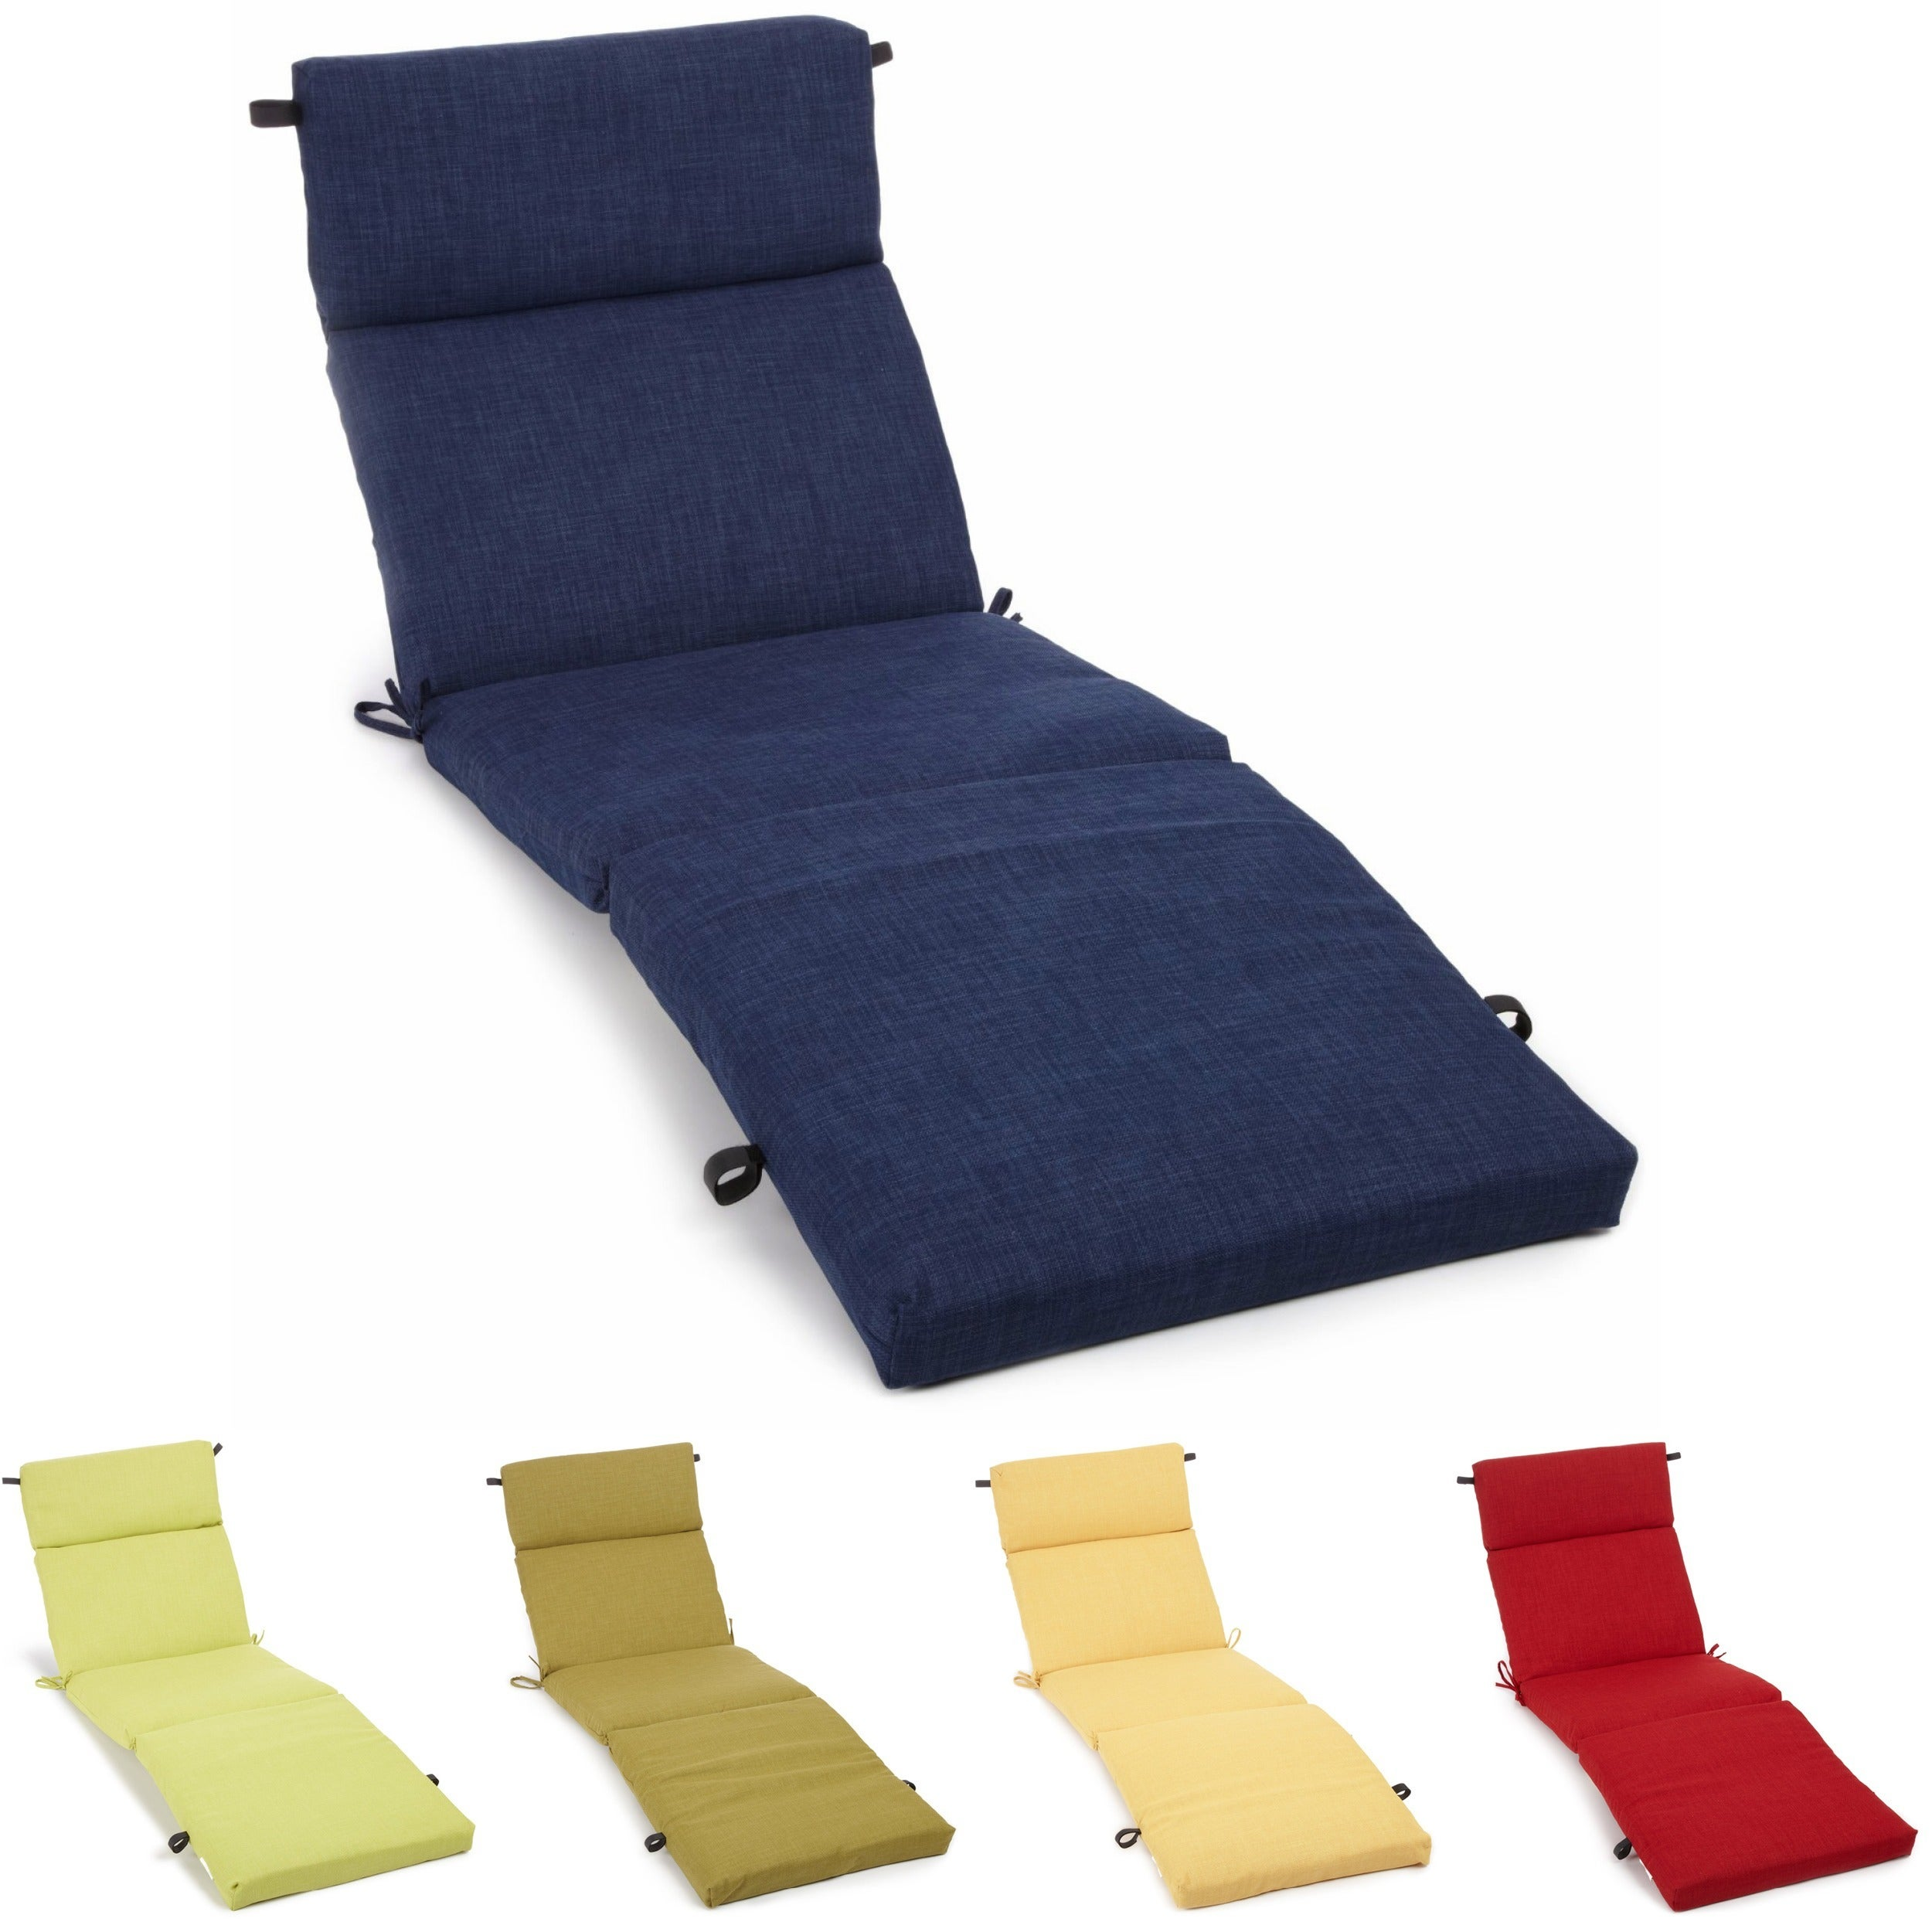 fabric sunbrella chaise p outdoor of solid yellow lounge cushion picture with ebay pillow sale cushions on perfect